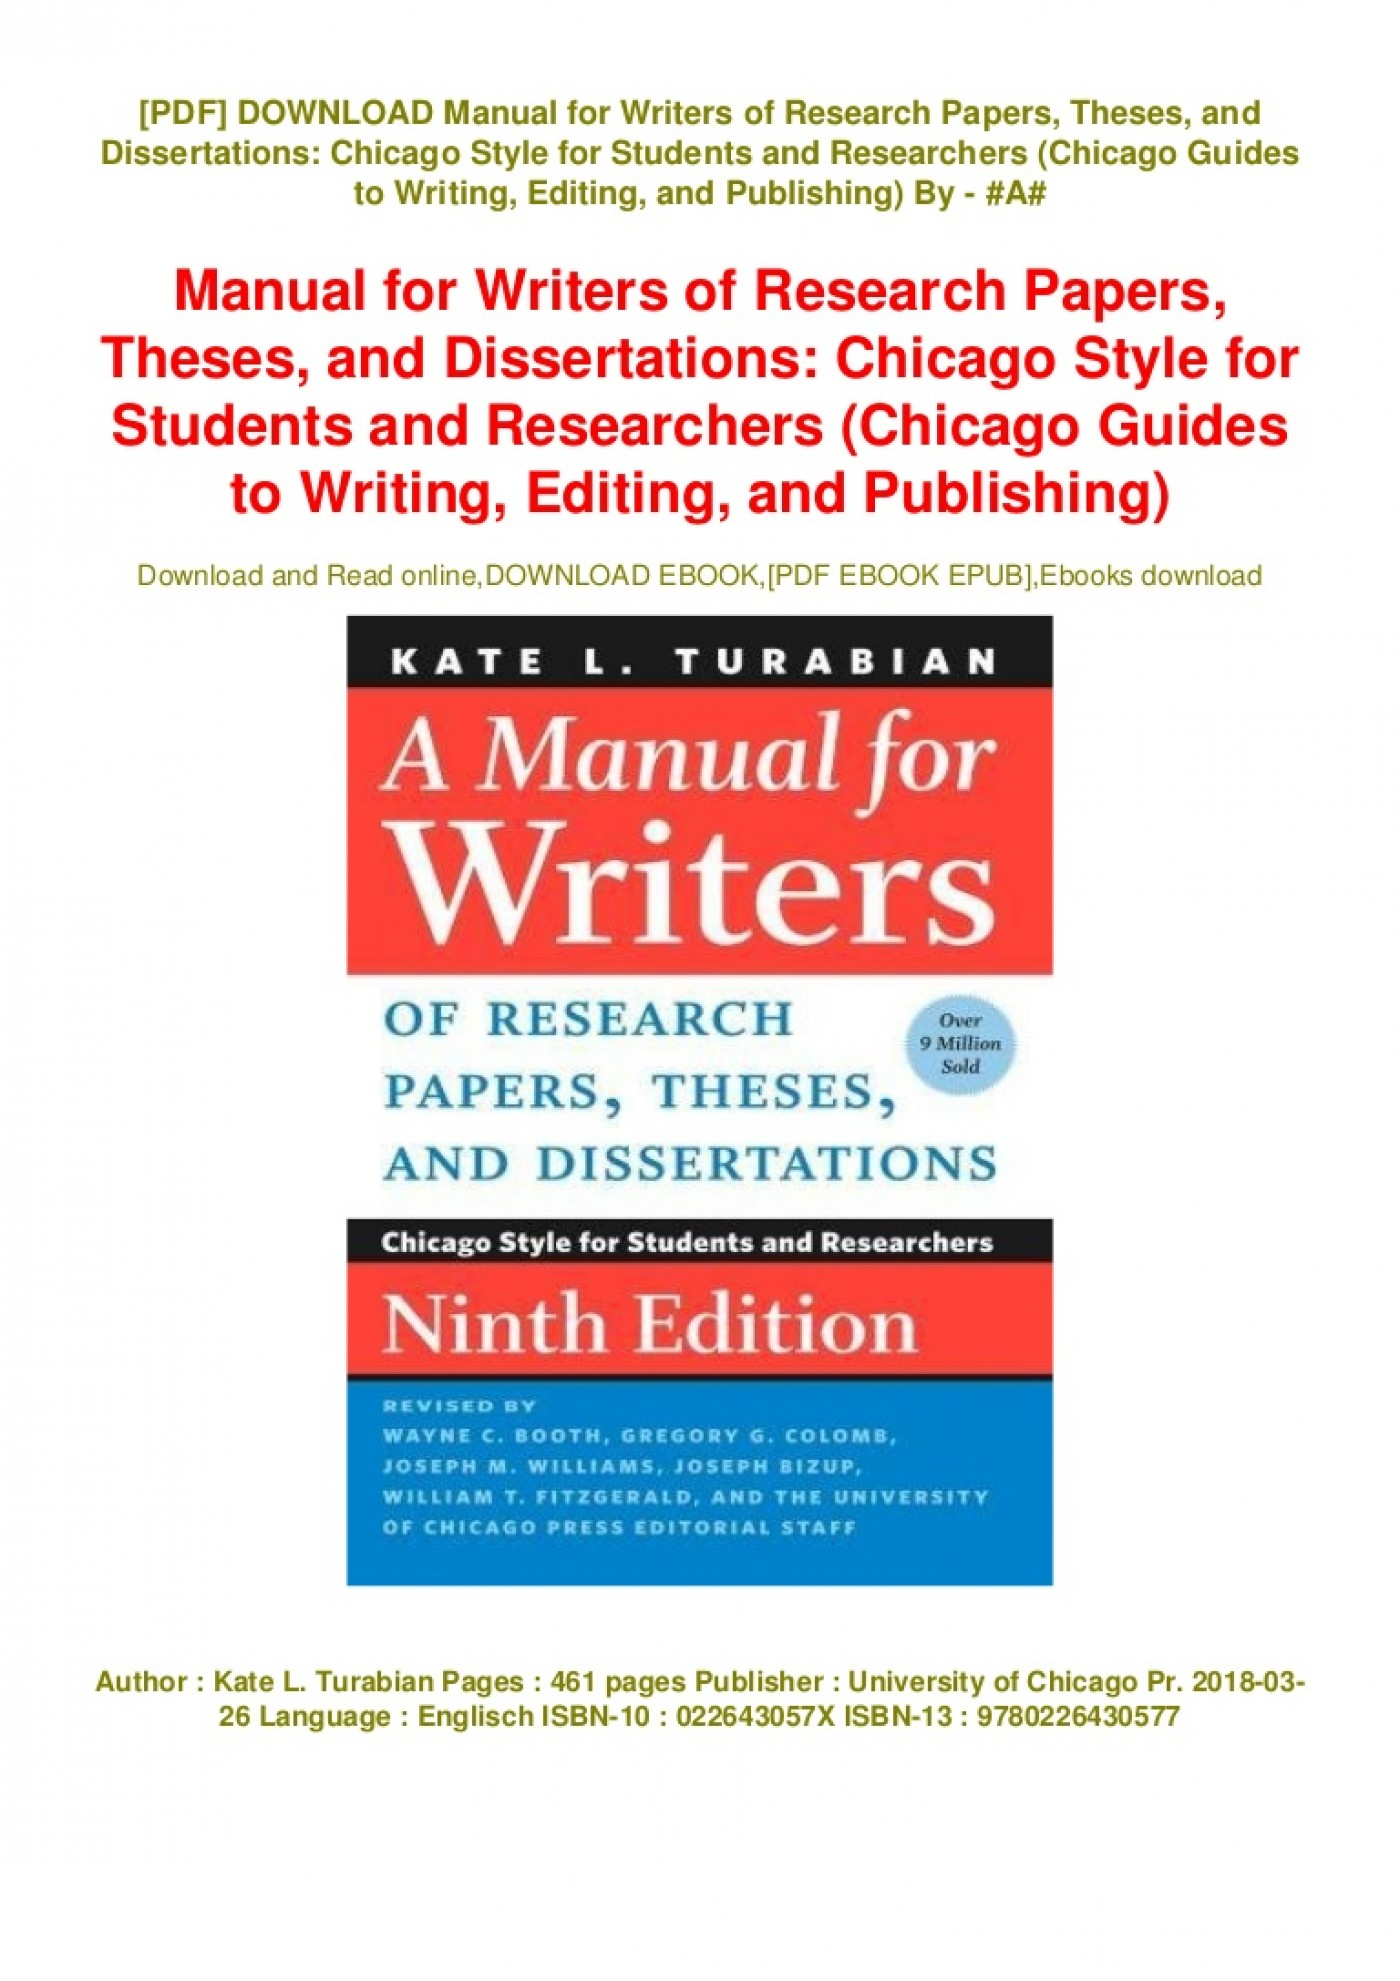 010 Download Manual For Writers Of Research Papers Theses Andations Chicago Style Students Thumbnail Unbelievable A And Dissertations Ebook 1400